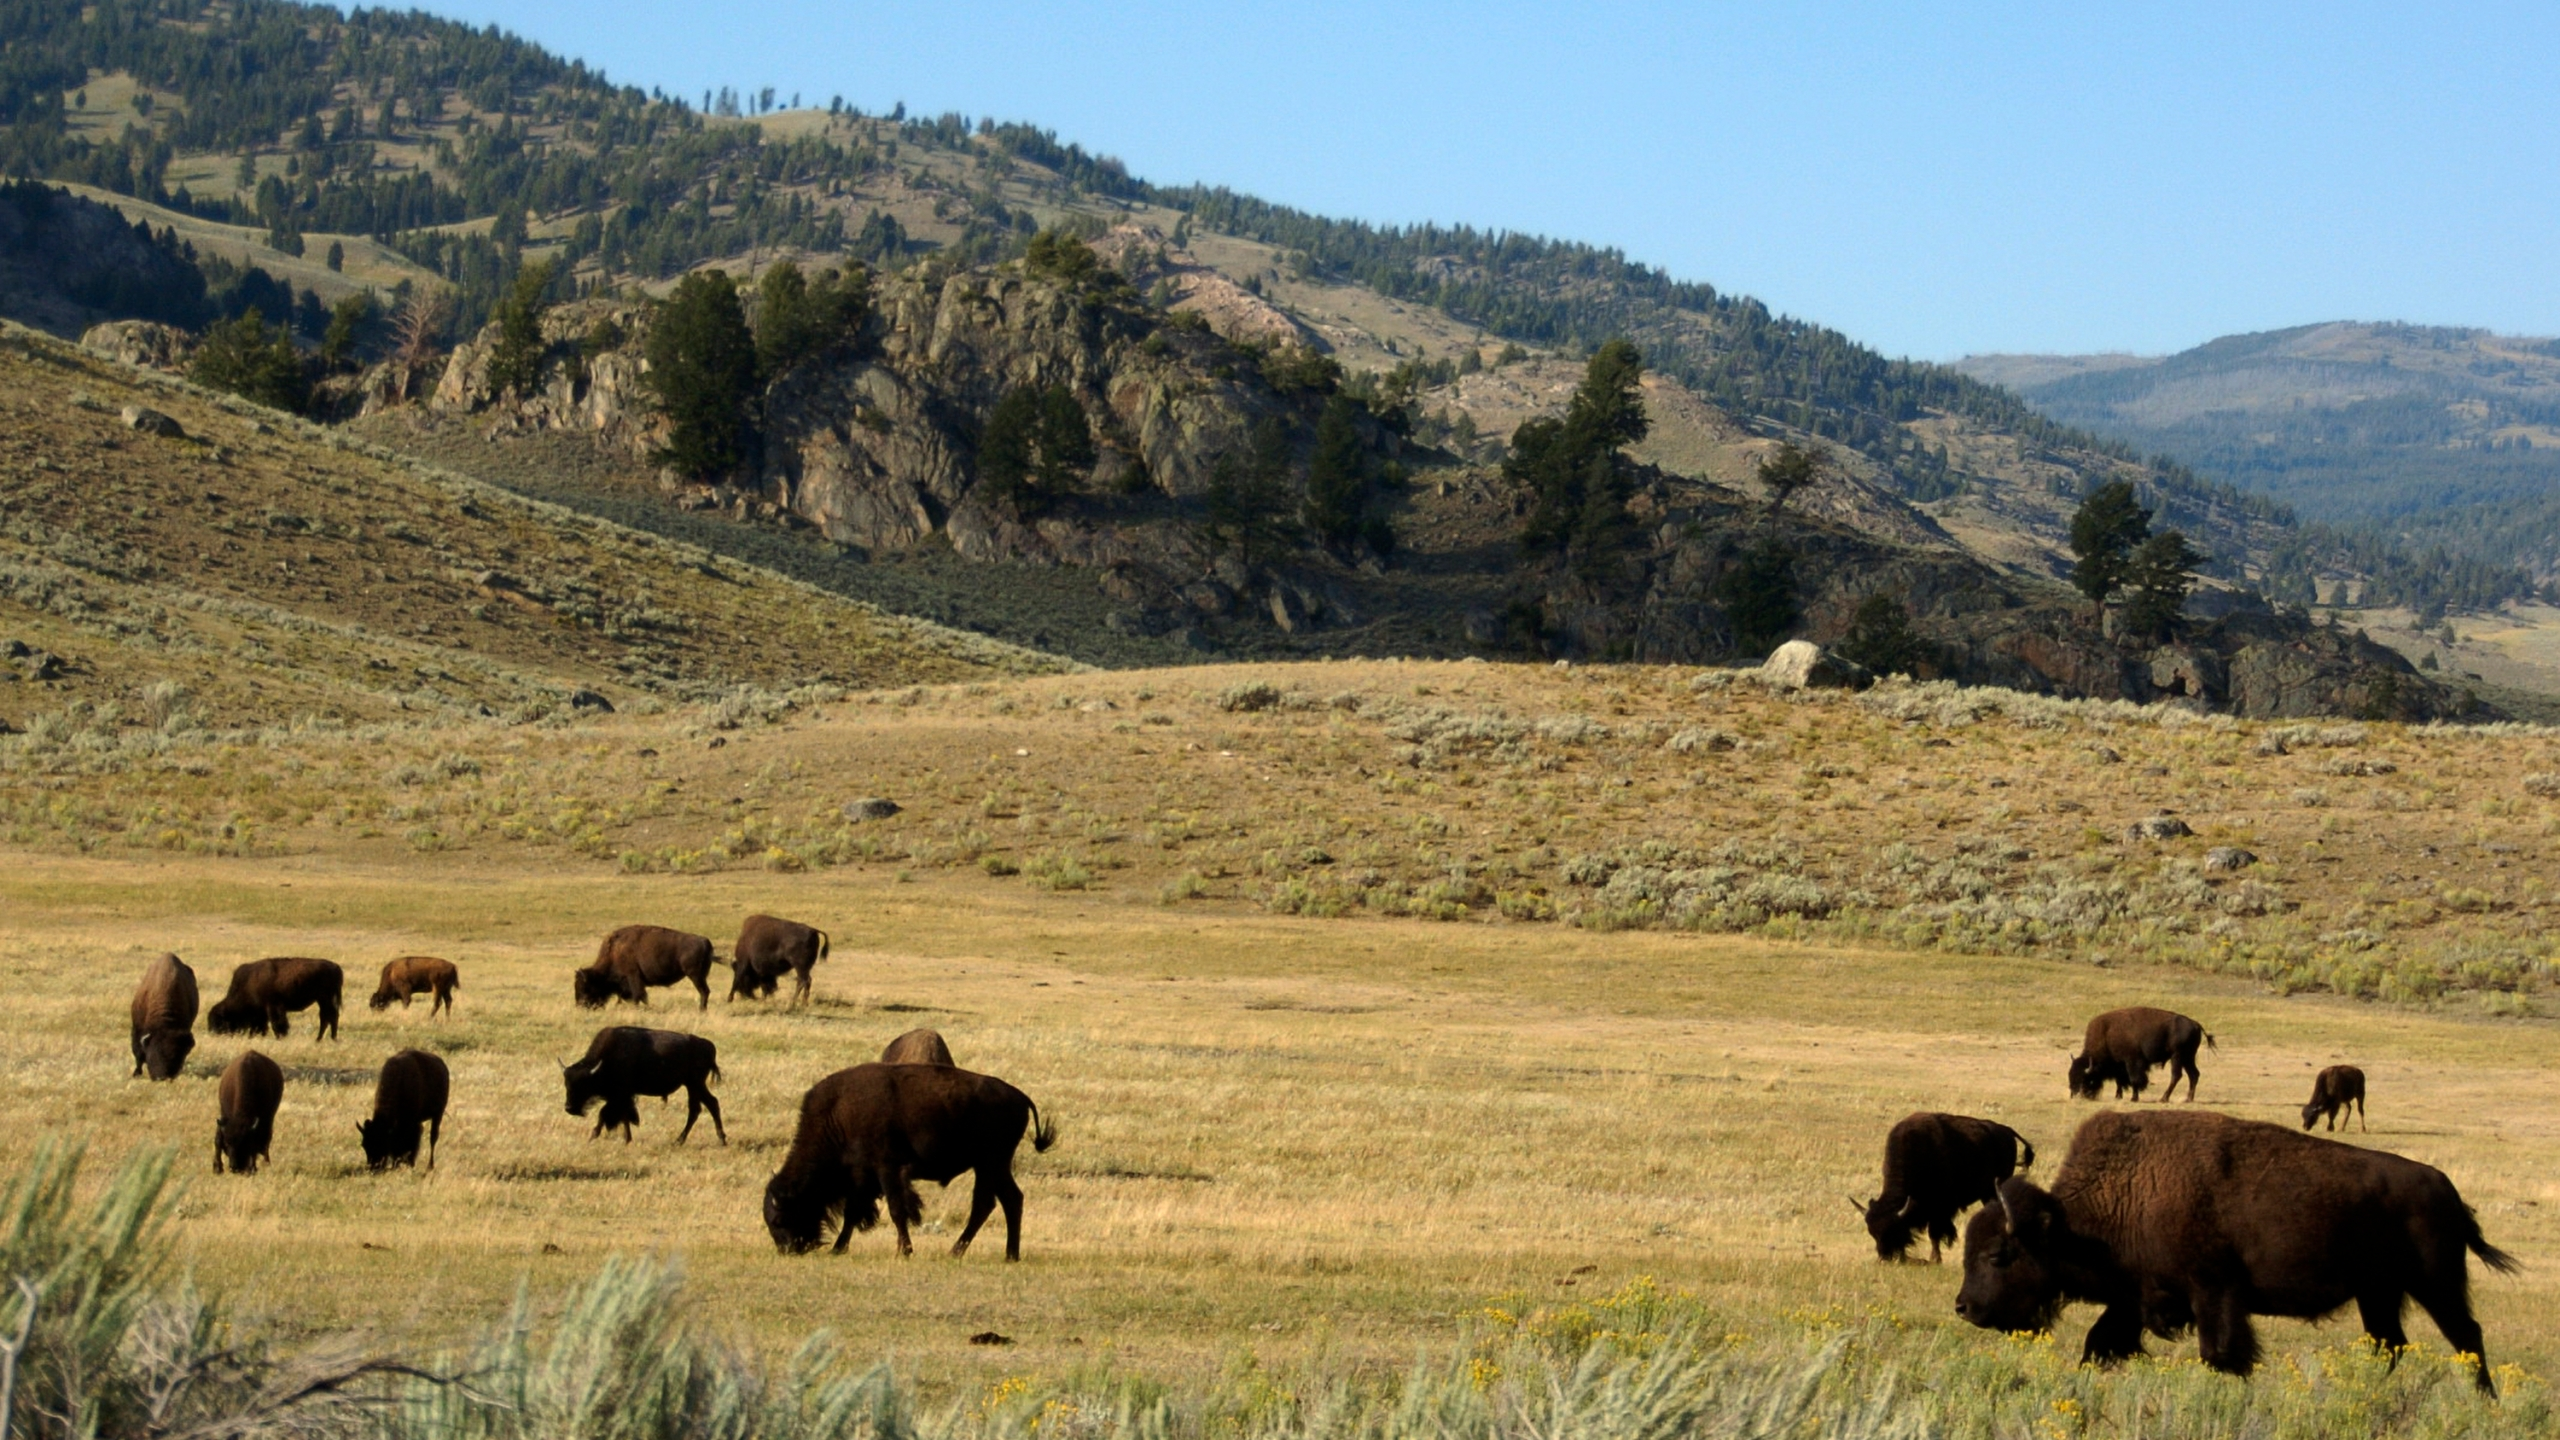 Yellowstone_Bison_Harassment_52189-159532.jpg24242909